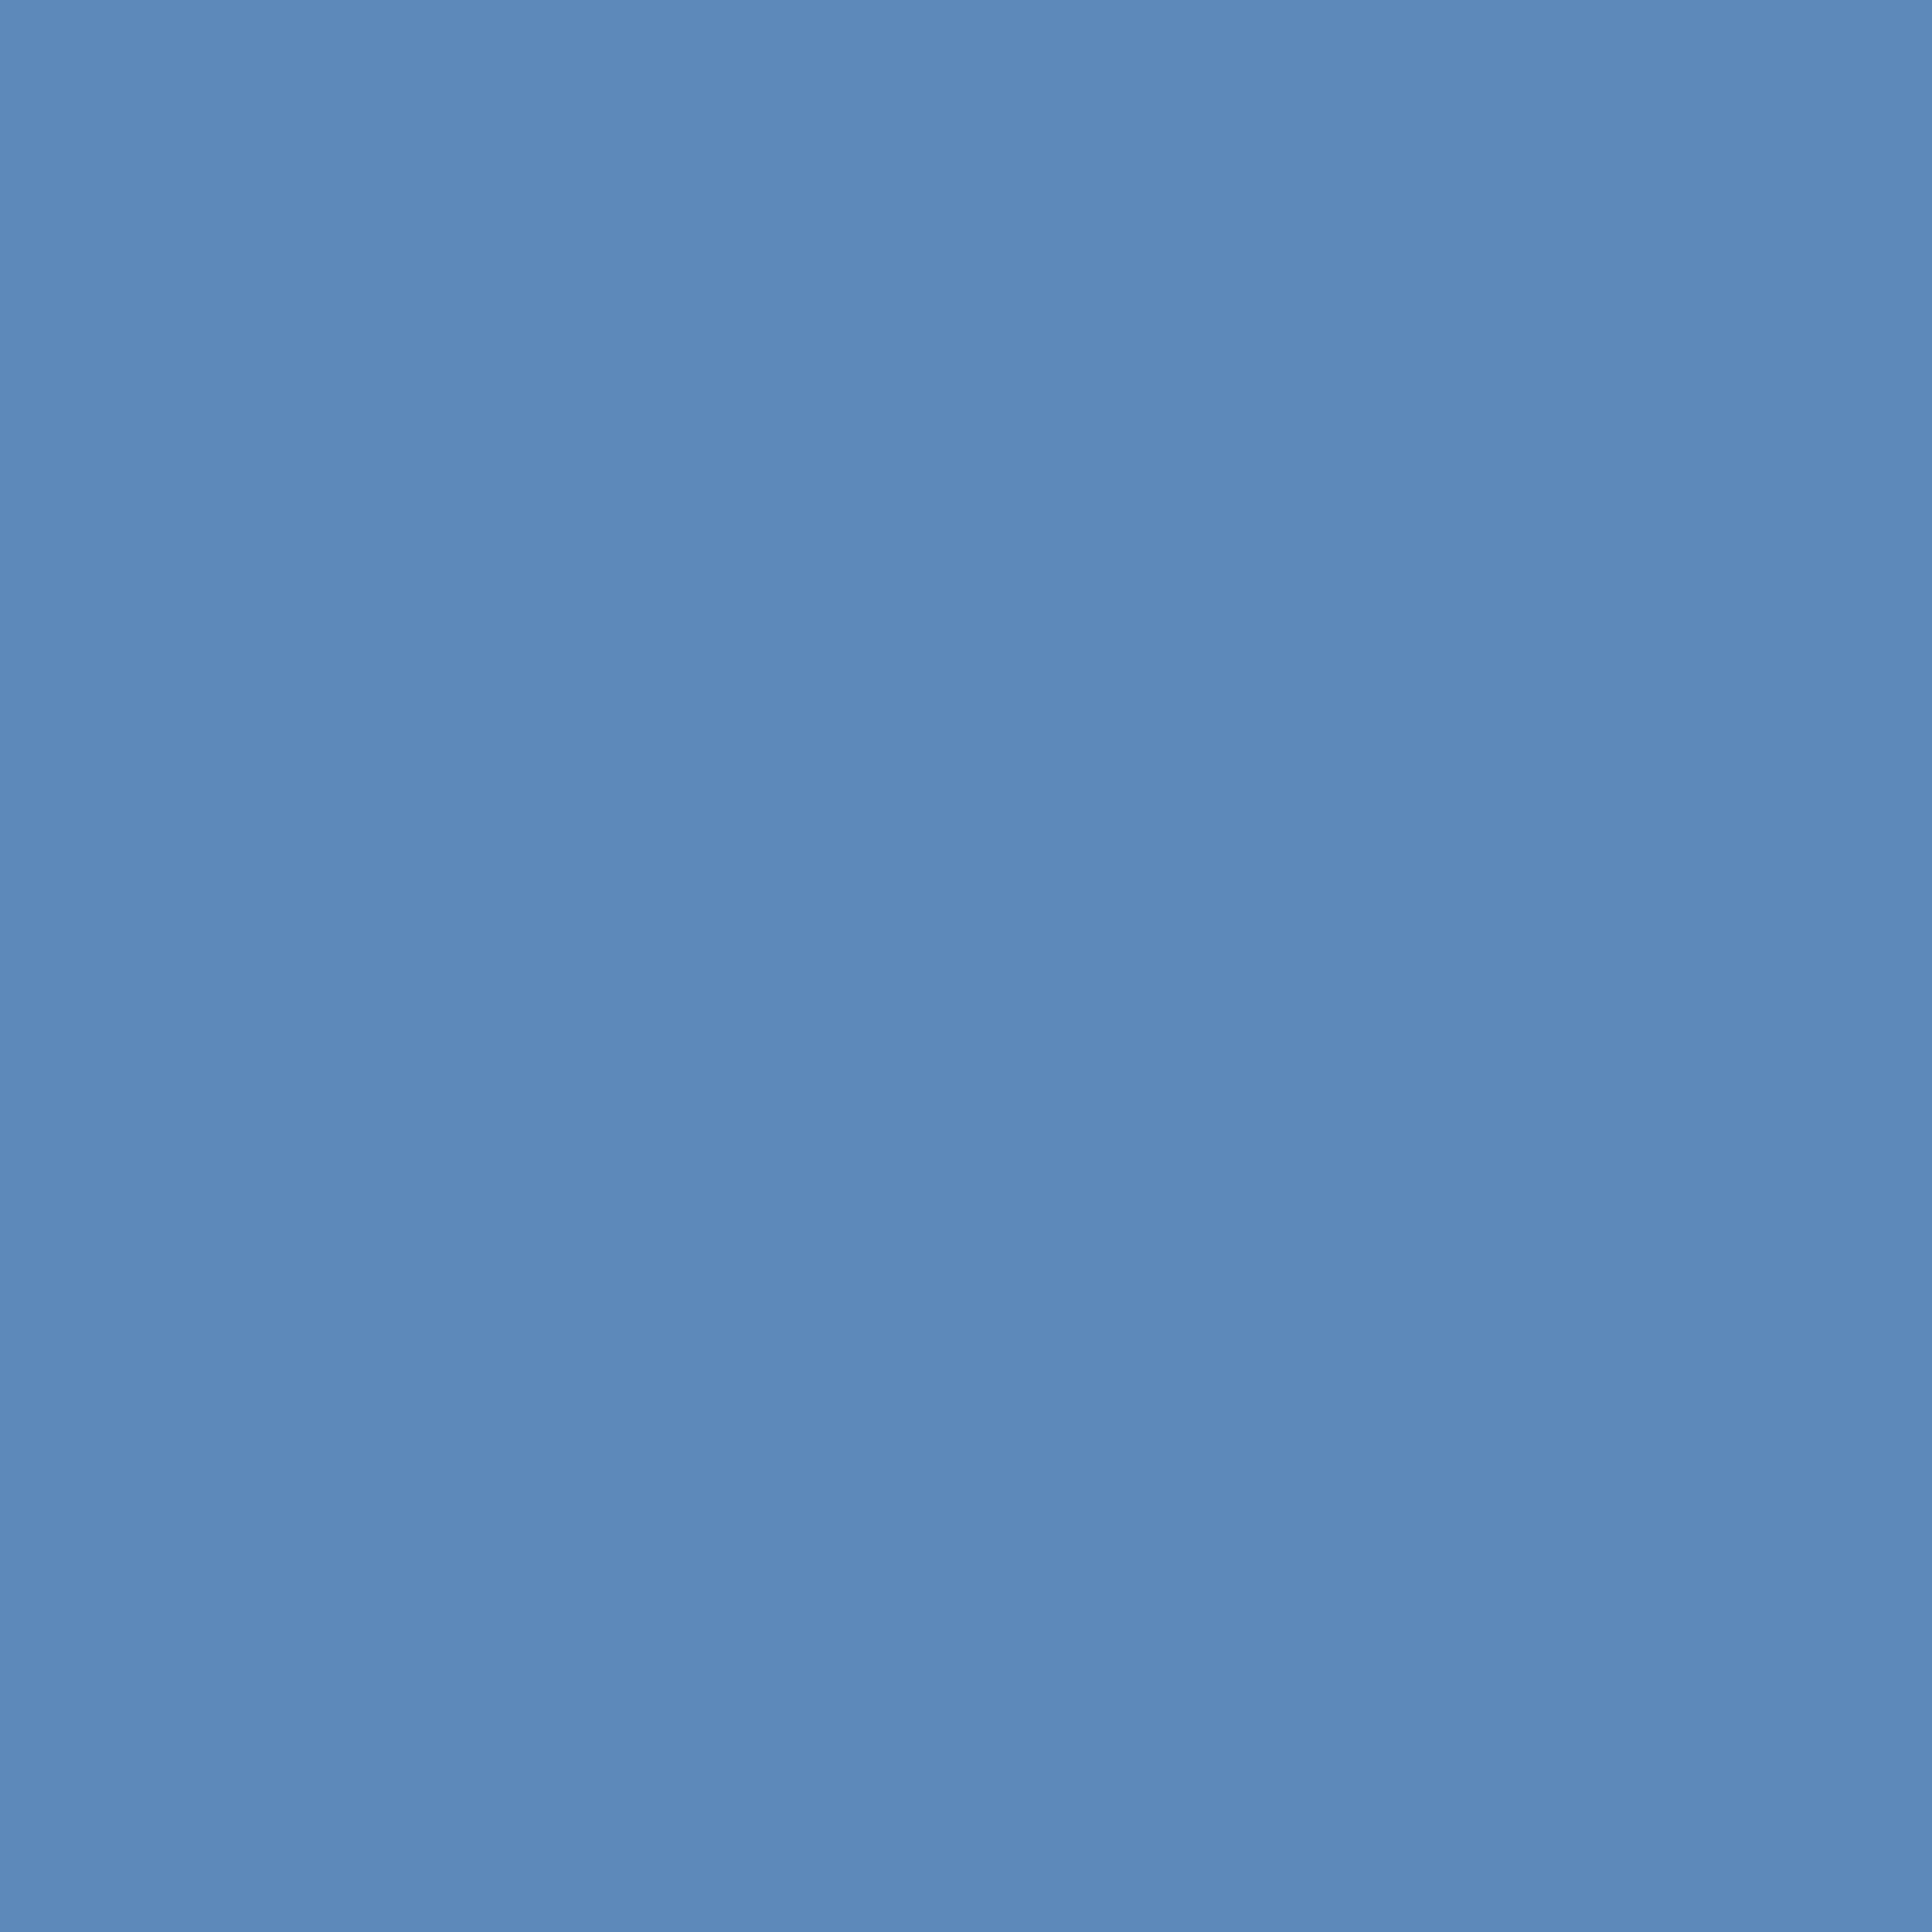 3600x3600 Silver Lake Blue Solid Color Background